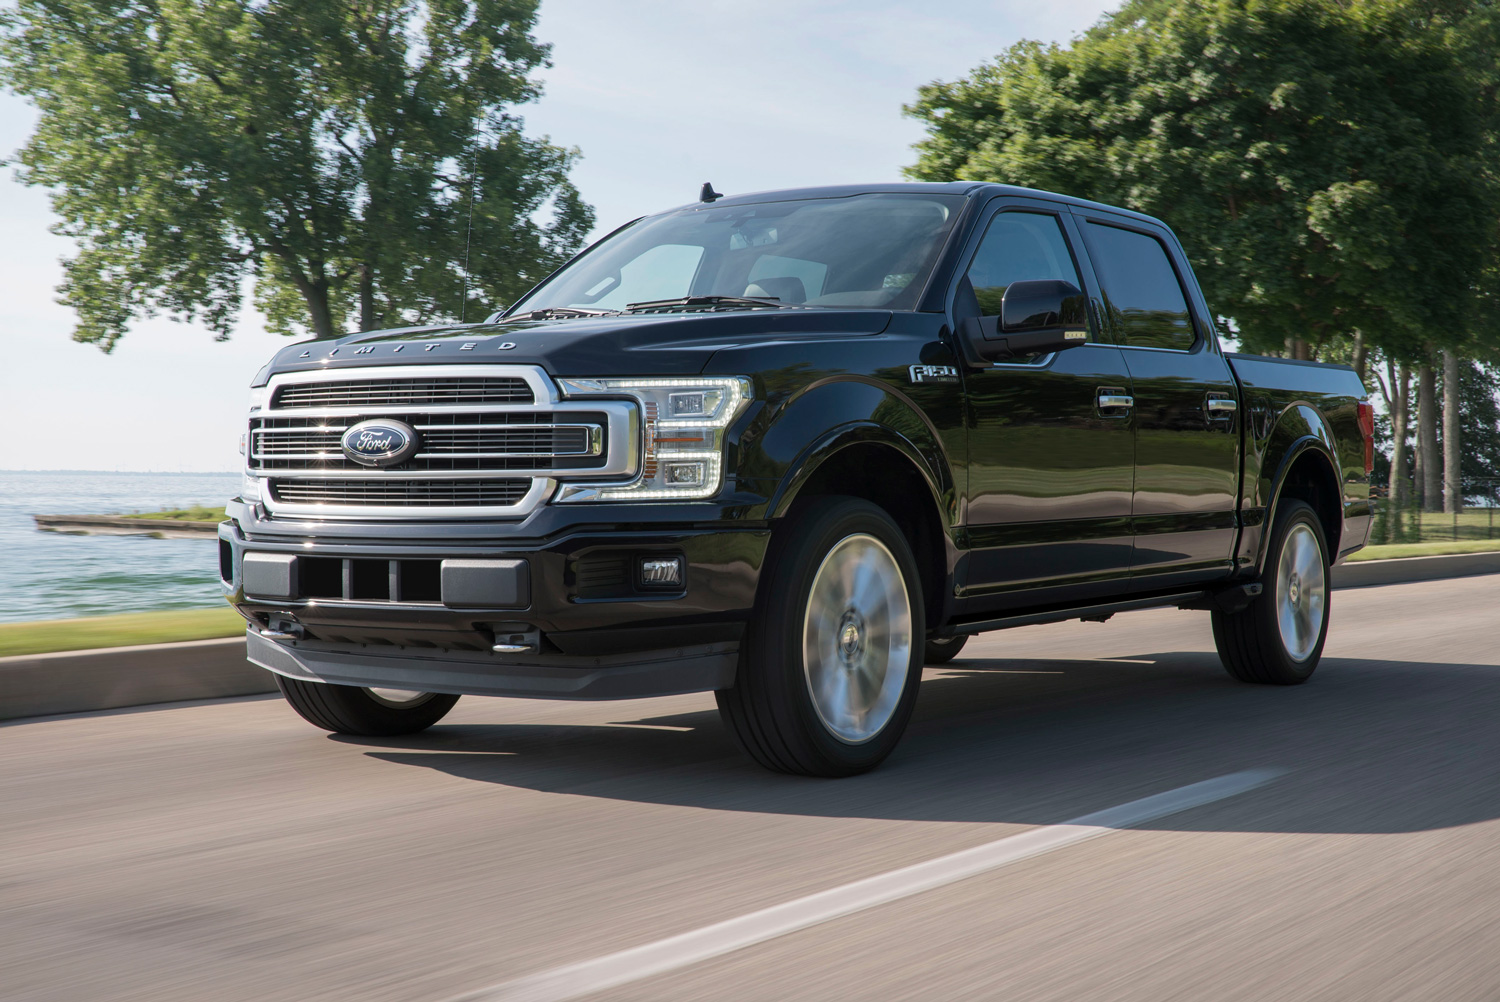 Ford scales back F-150 V-8 production amidst reduced demand thumbnail